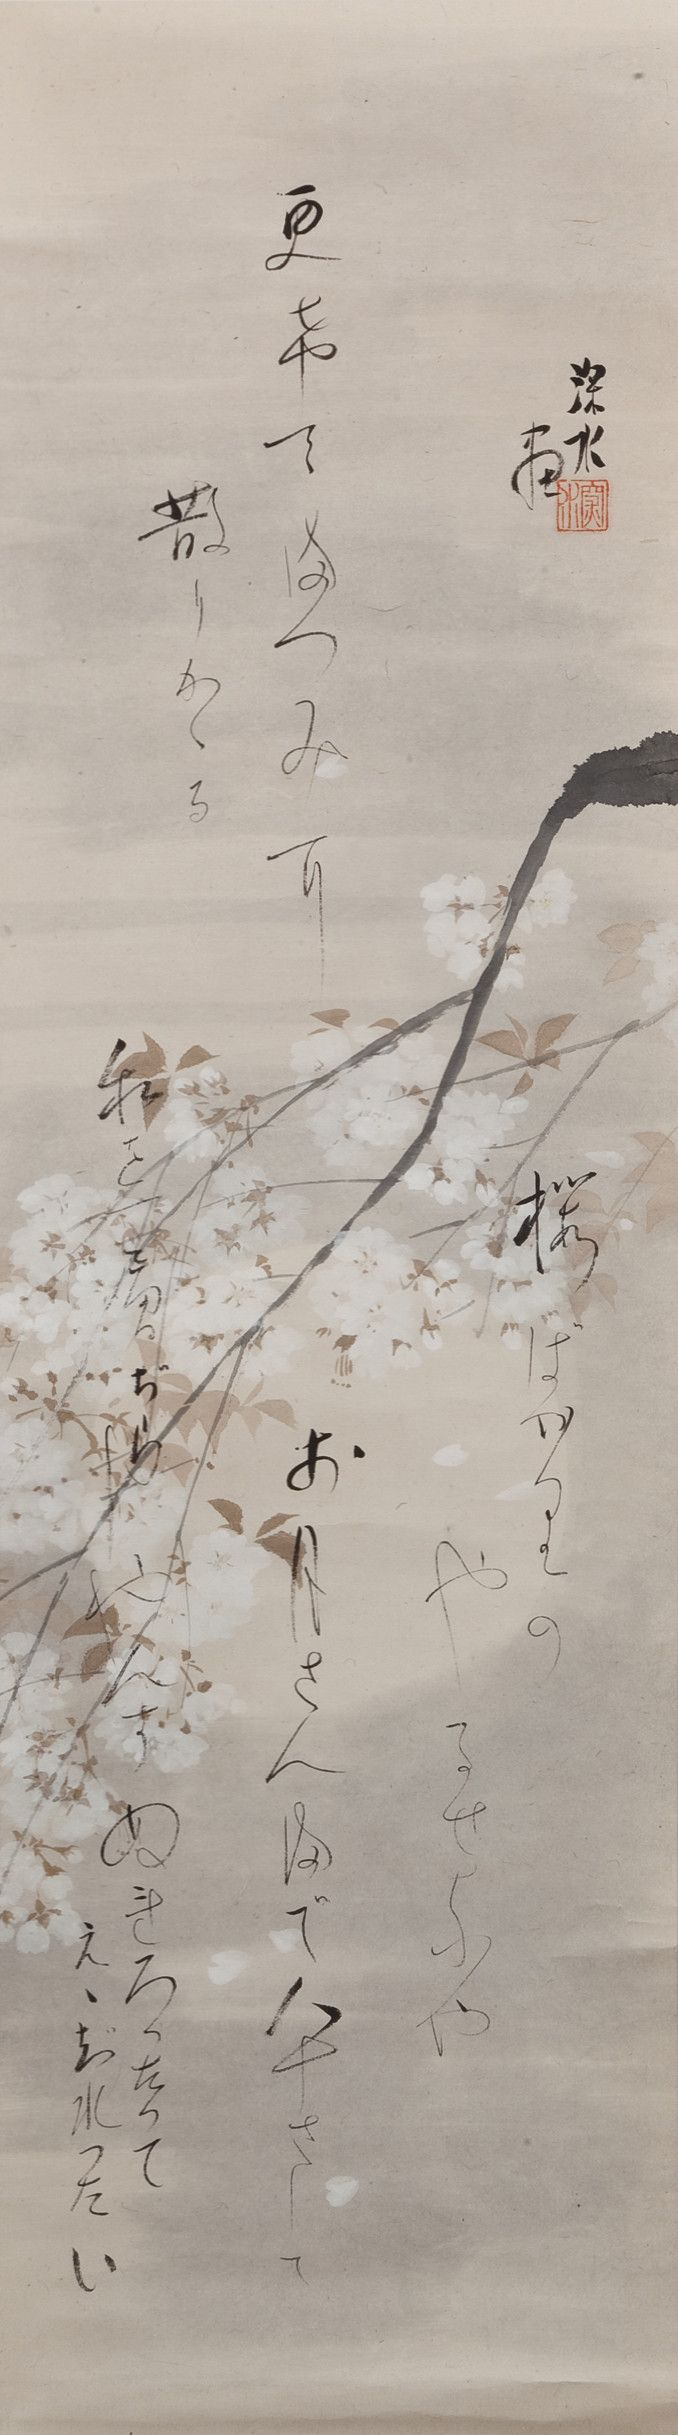 Tanka Poem with Full Moon and Flowering Branch of Cherry by ITO Shinsui (1898-1972), Japan 伊東深水 | JAPANESE, CHINESE INK DRAWINGS | Pinterest | Poem, Cherries a…